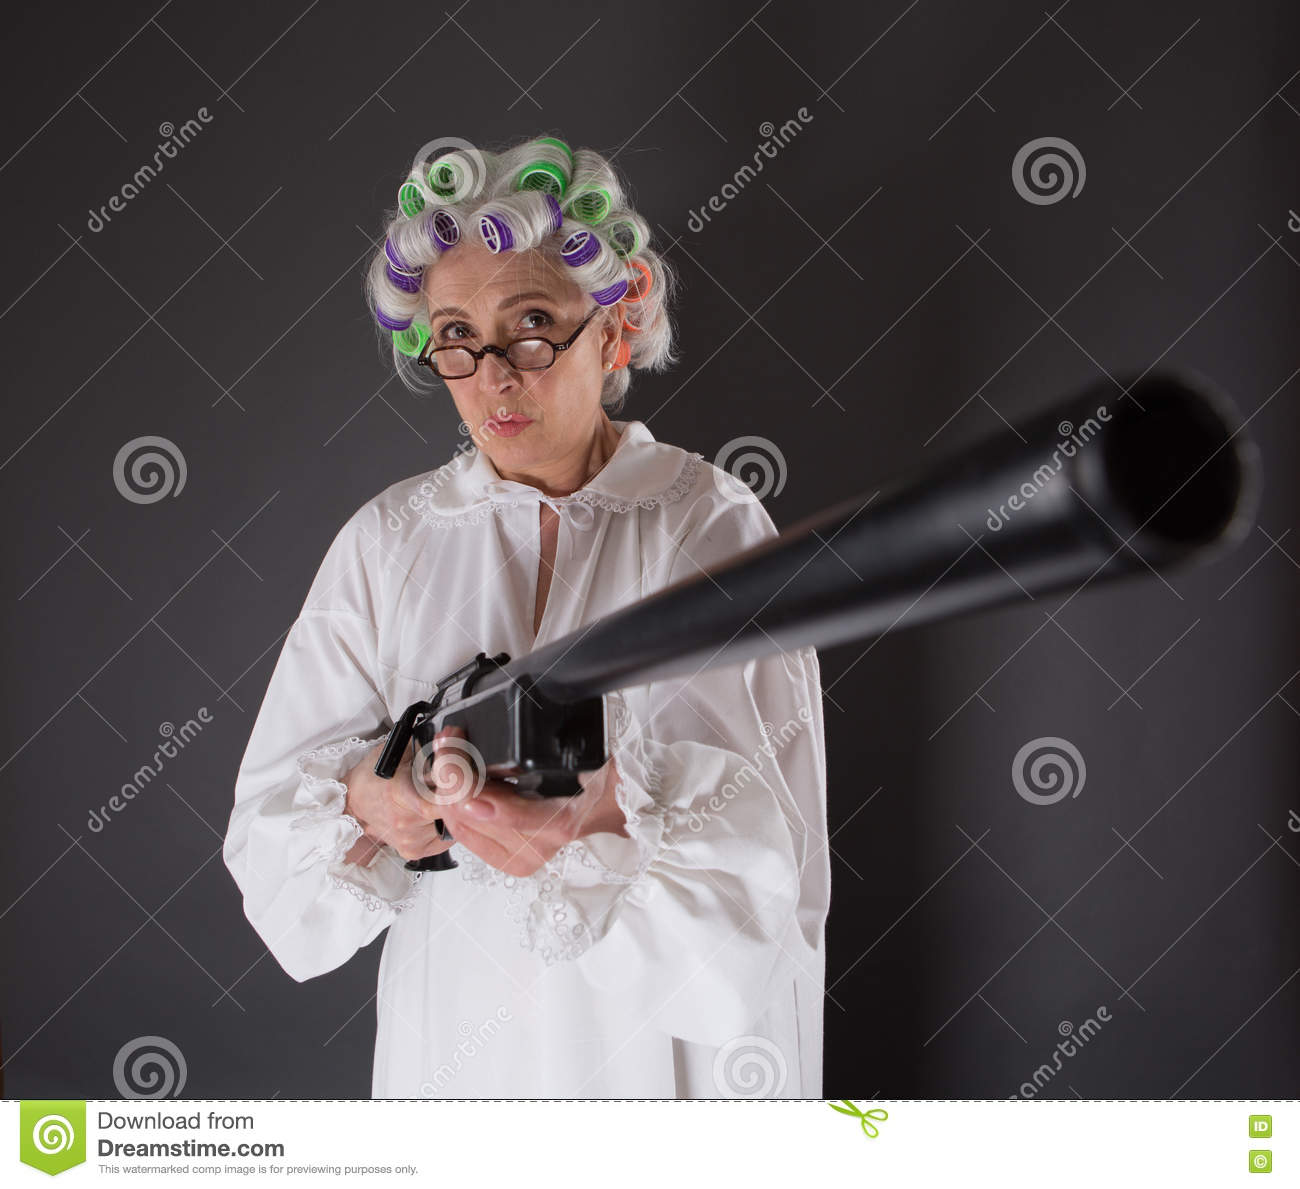 Grandmother In Defence Stock Image. Image Of Weapon